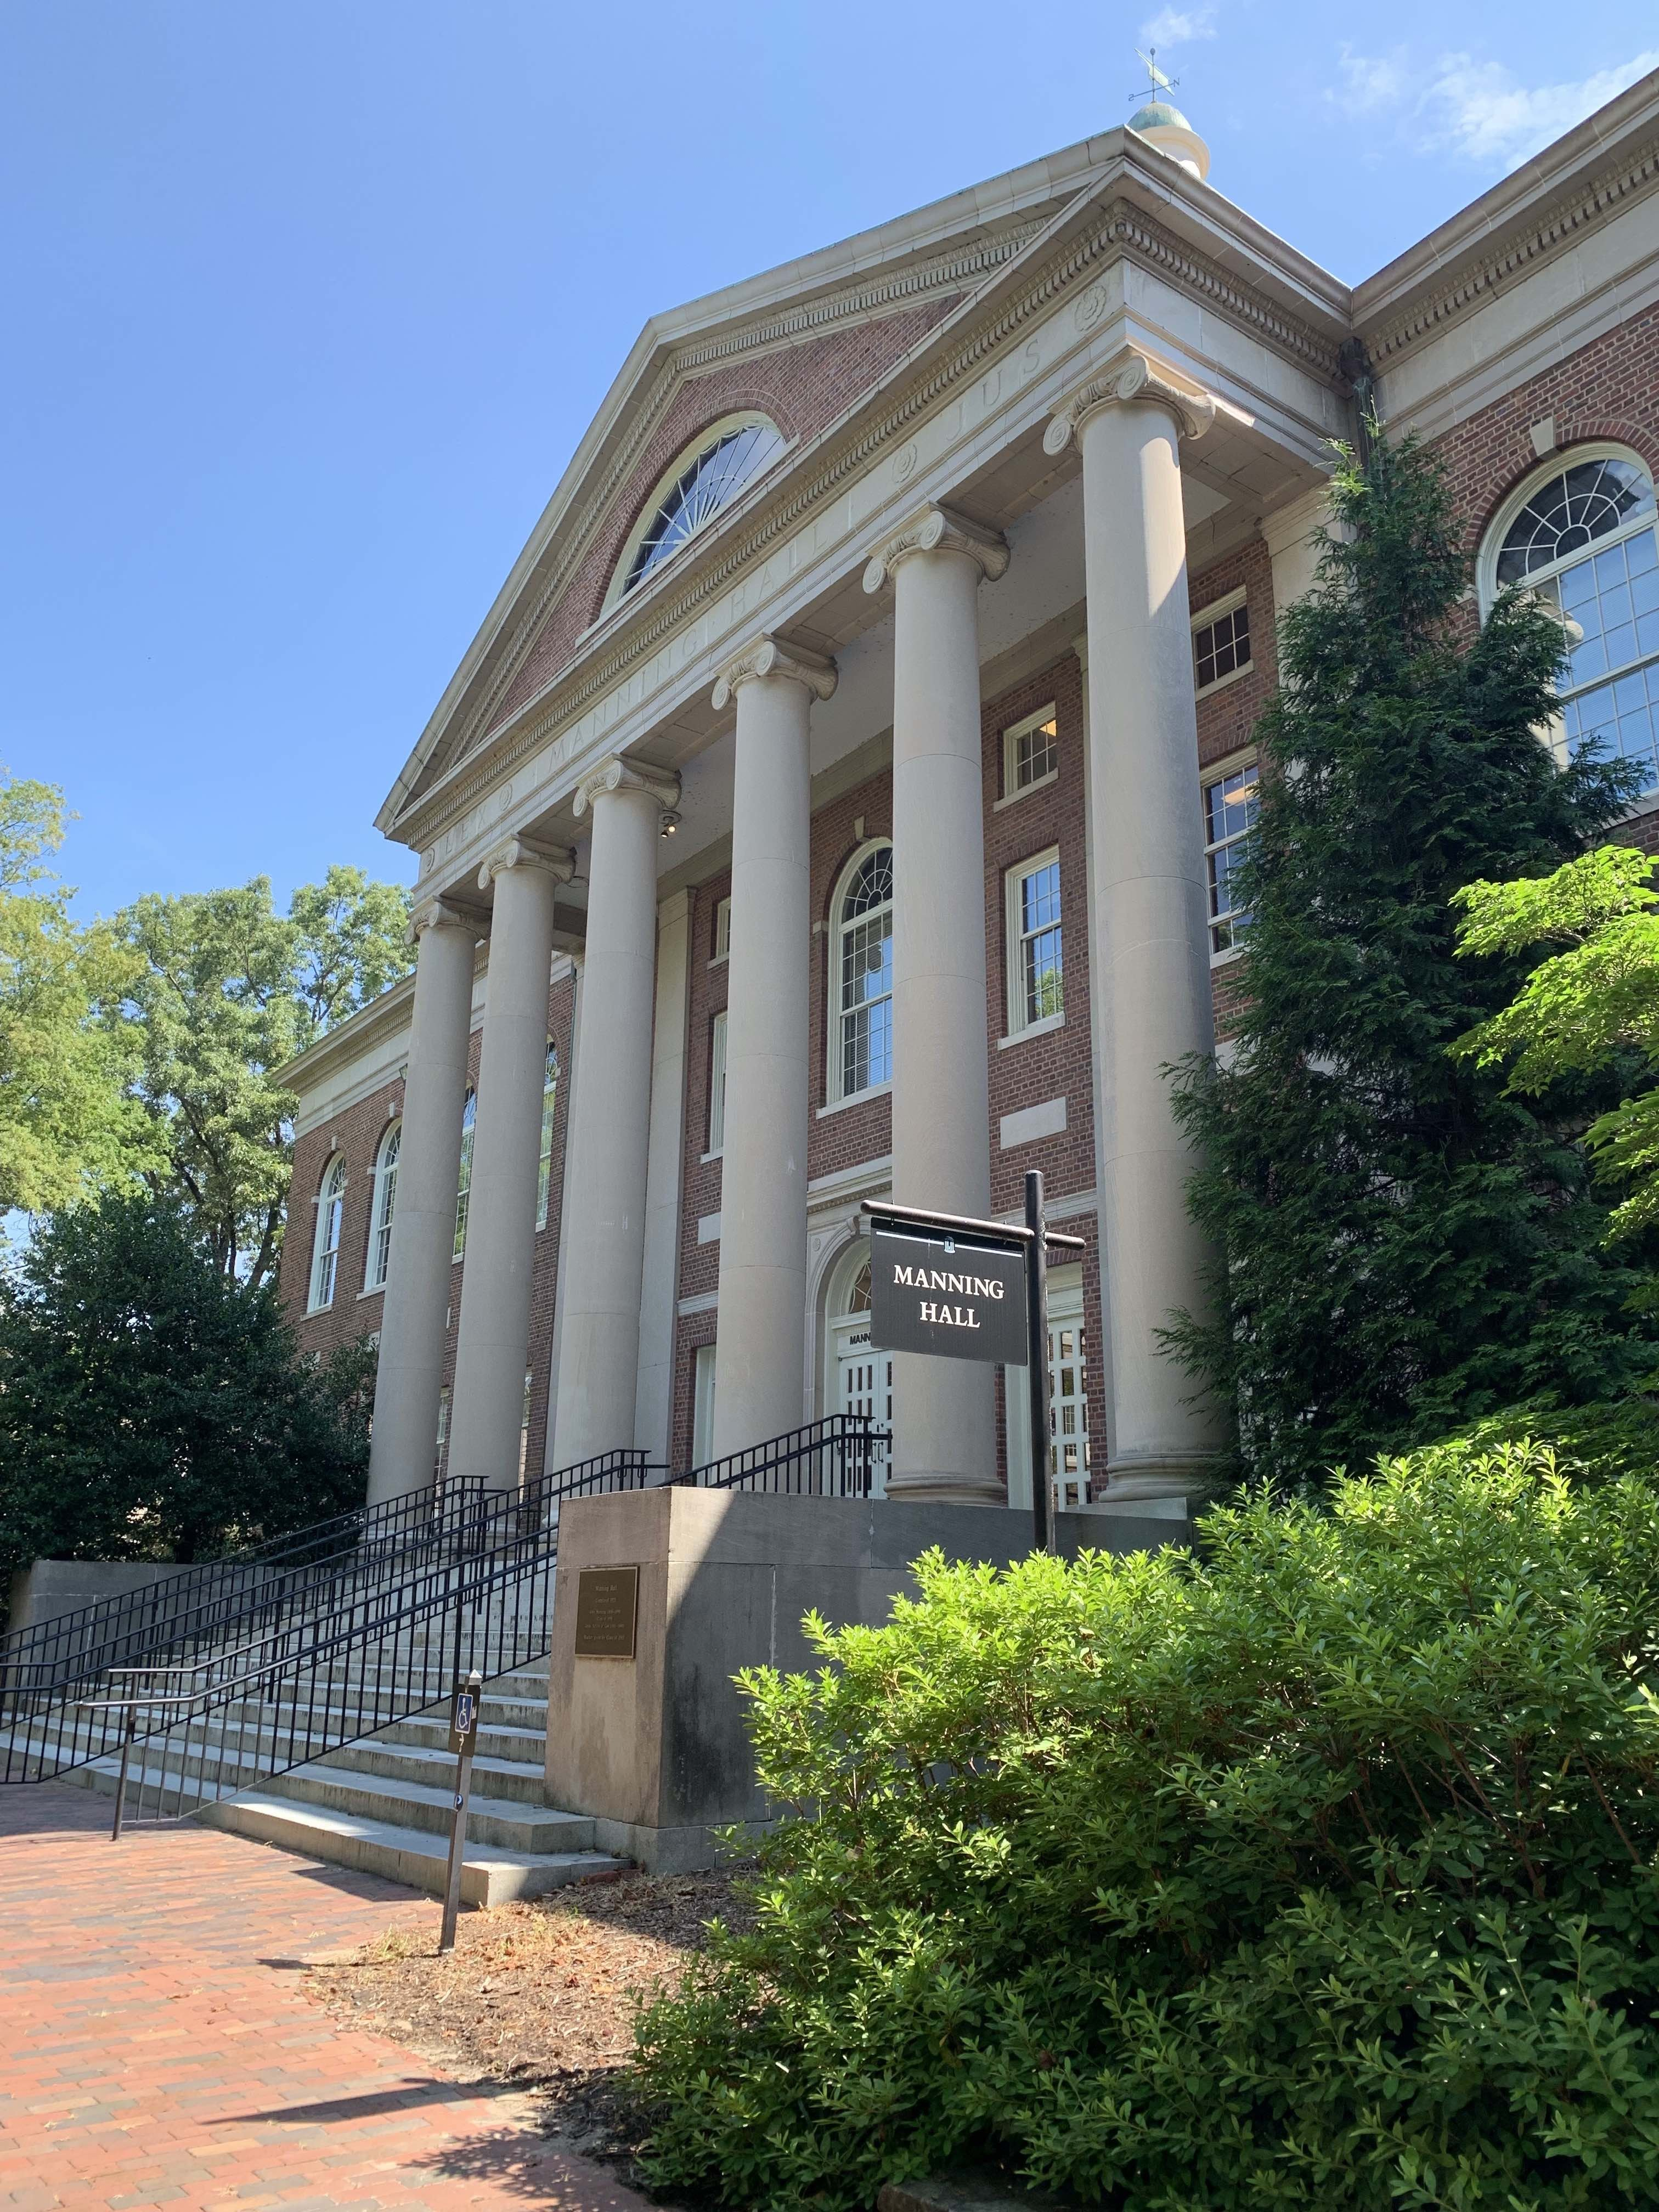 The Law School at Manning Hall was desegregated after black students sued the university for wrongful denial of admission. Decades later, a vacant Manning Hall would become the central location of the Foodworkers' Strike.